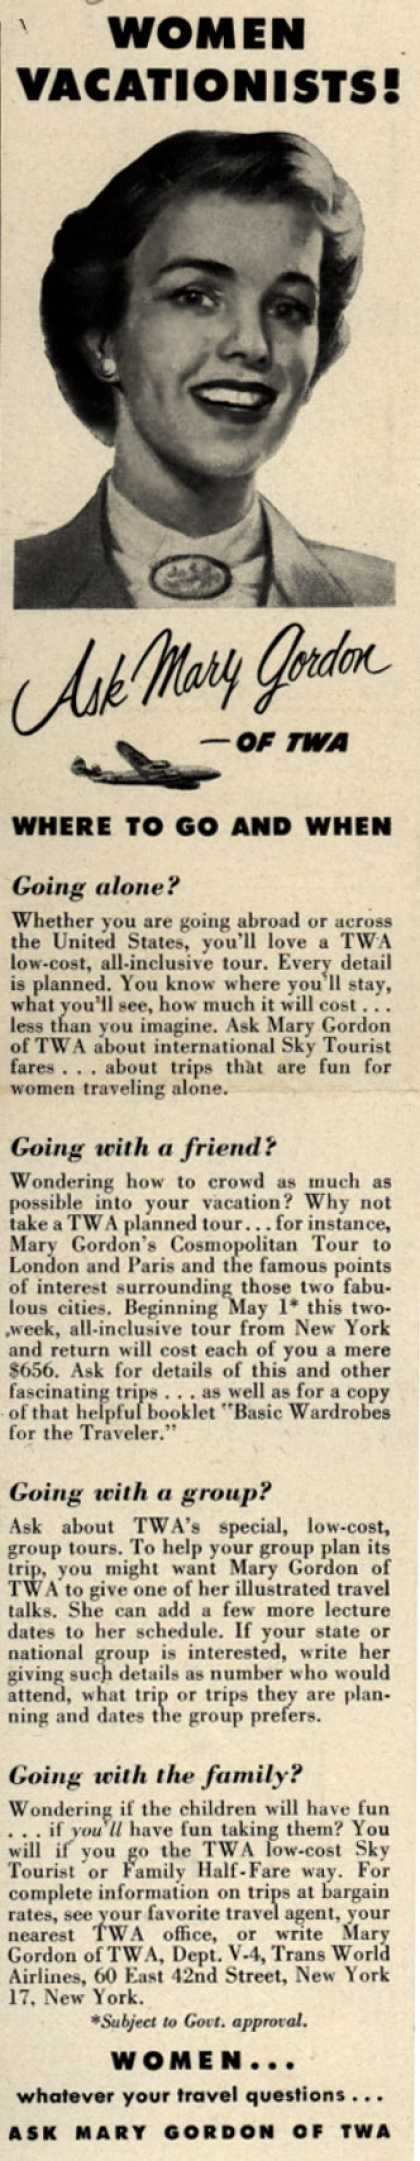 Trans World Airline's Mary Gordon – Women Vacationists! Ask Mary Gordon of TWA Where To Go And When (1952)